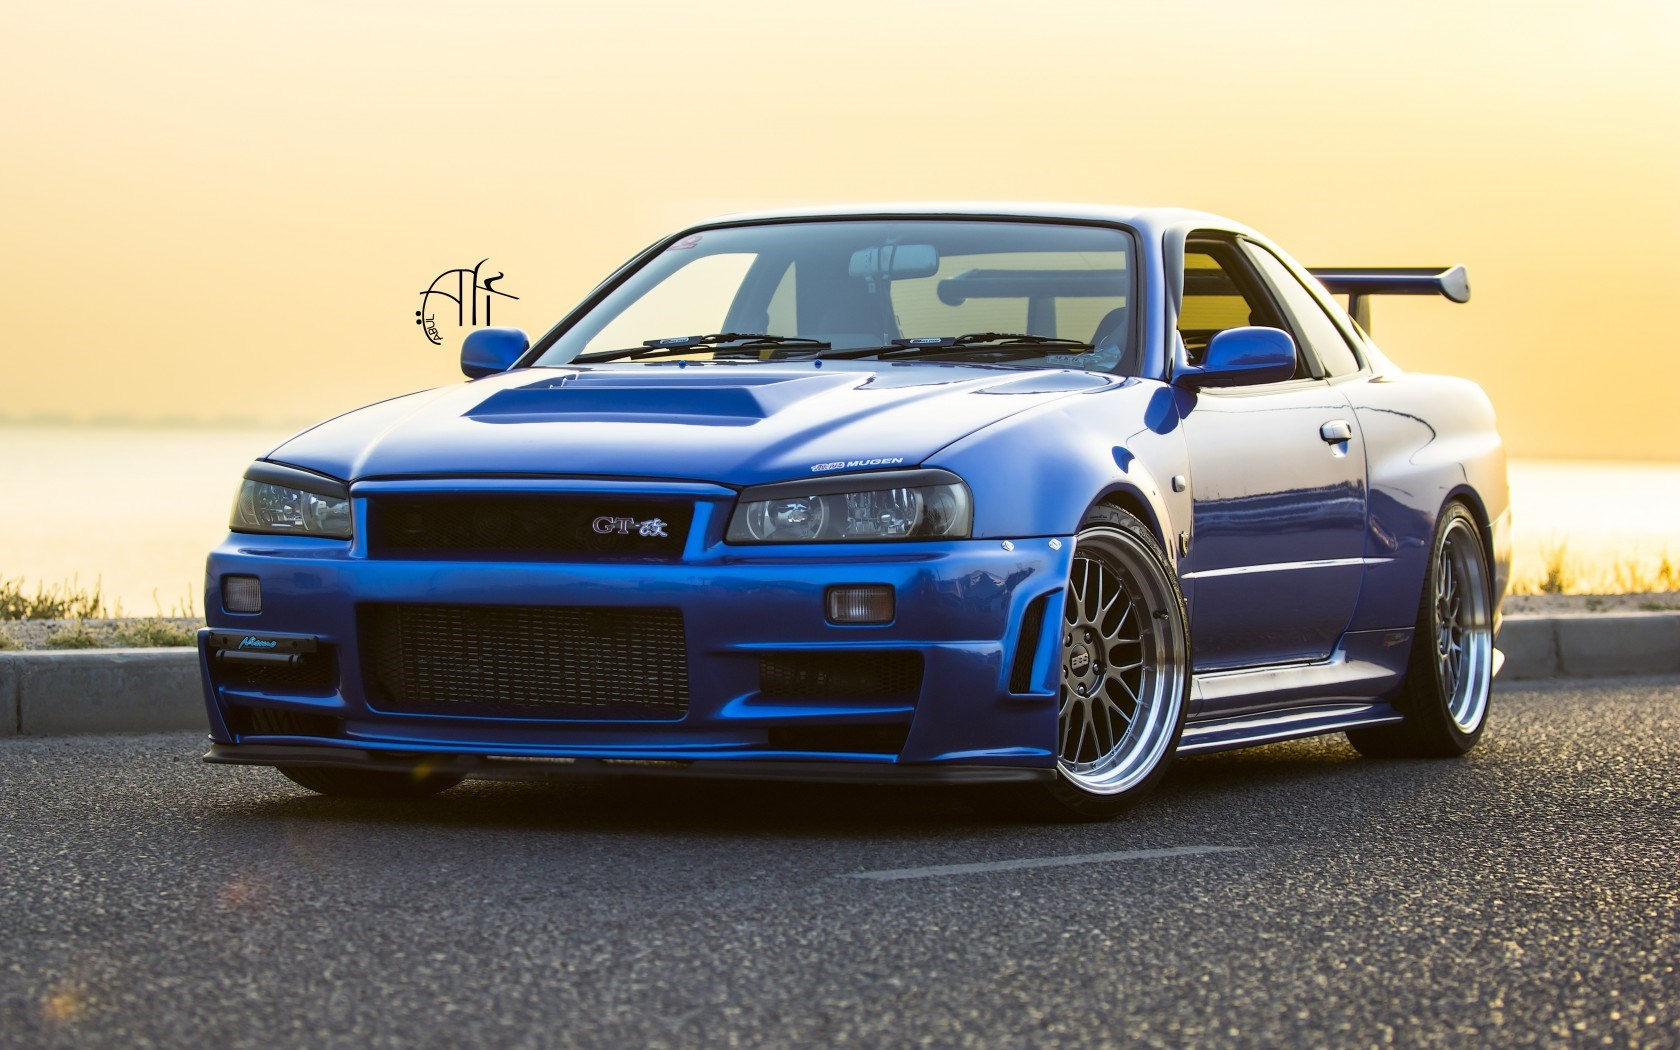 Nissan Skyline GT-R R34 Car Wheels Tuning